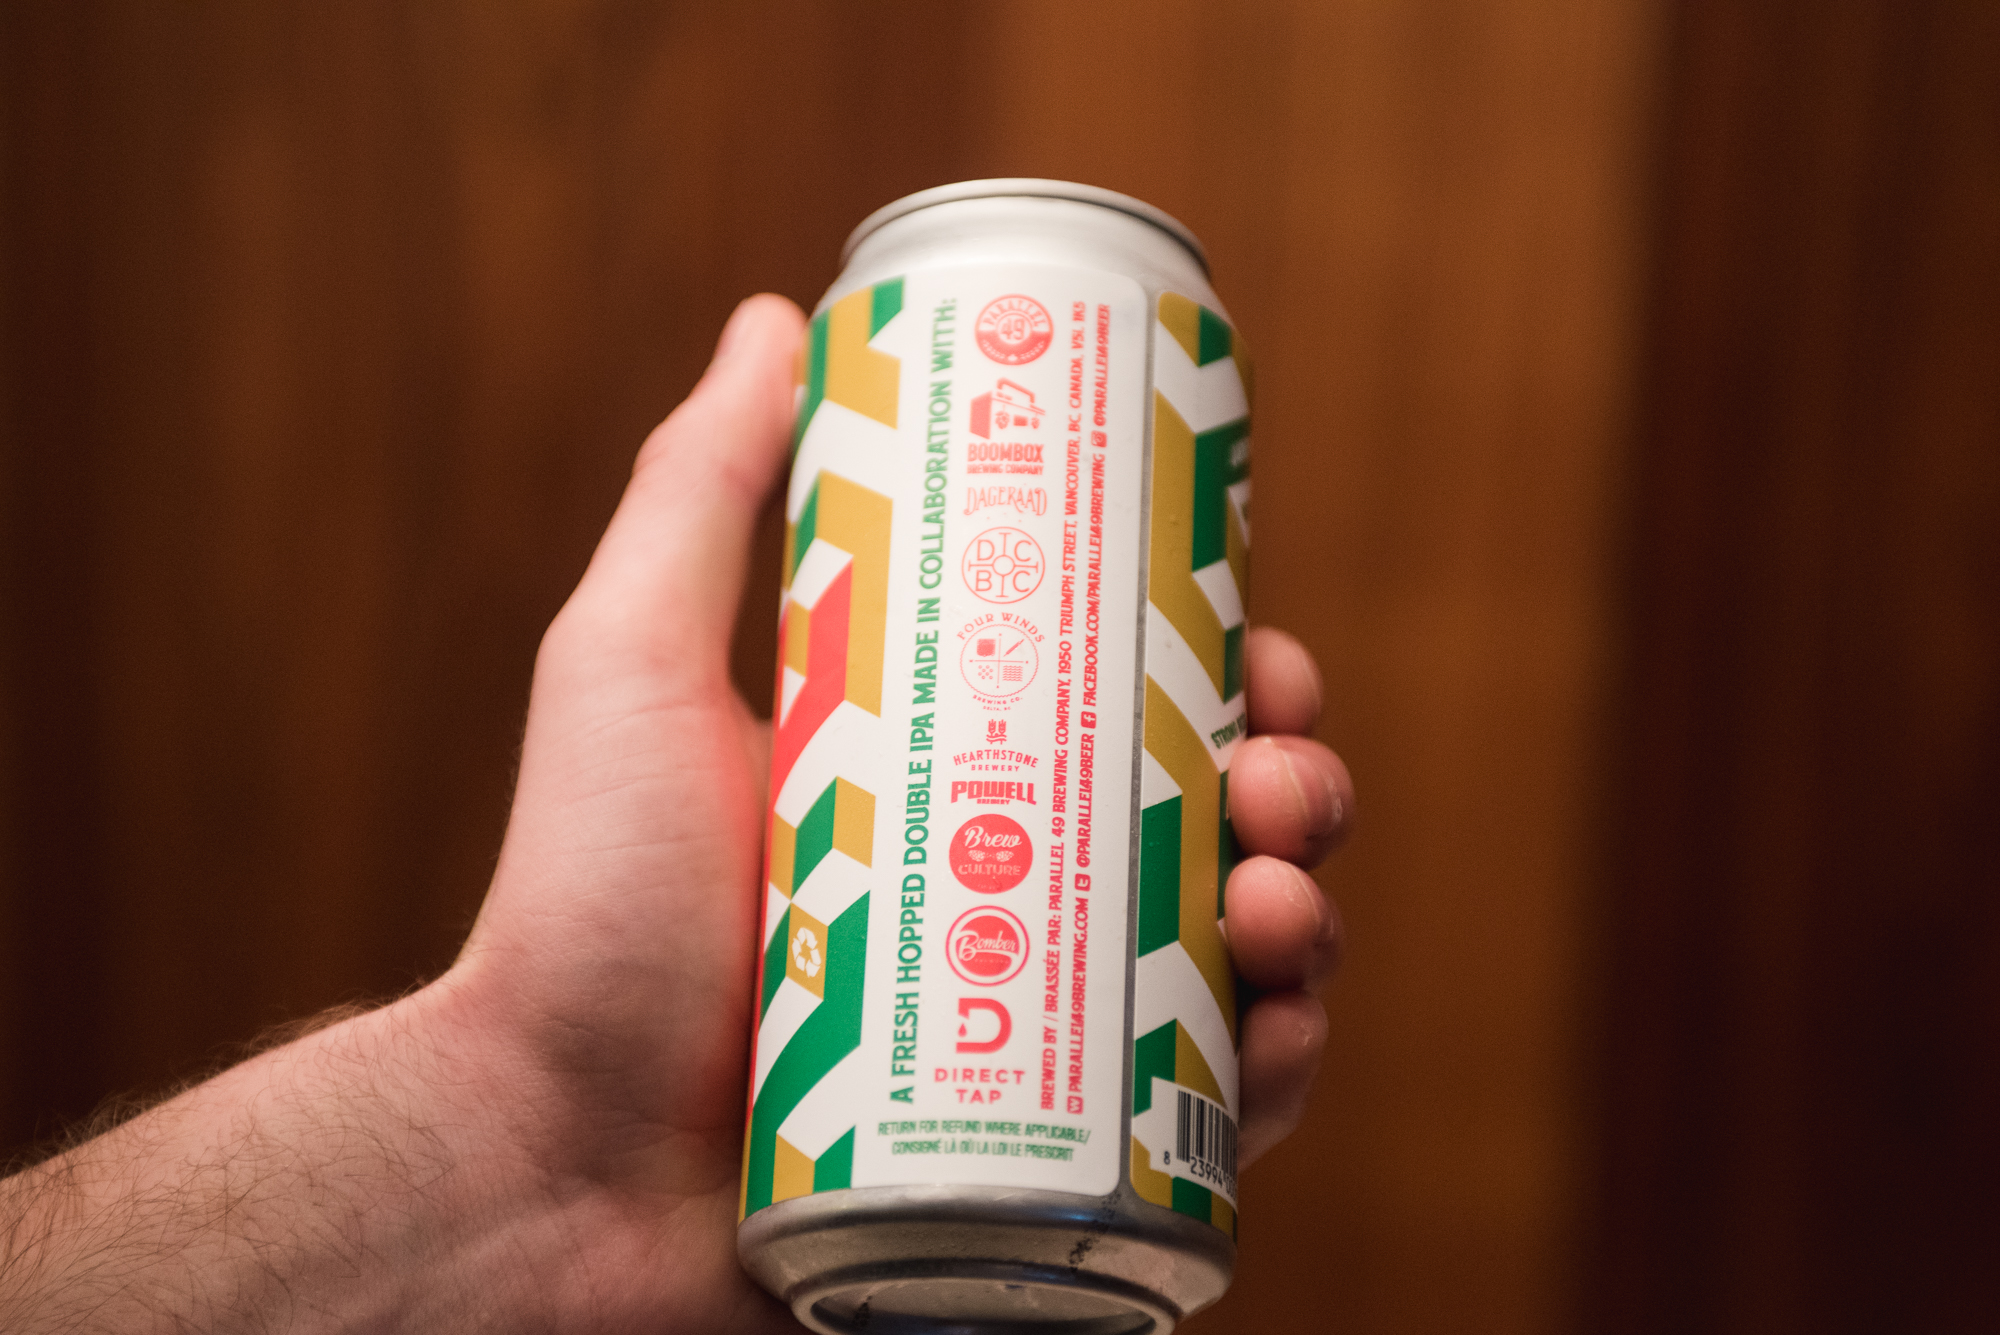 brew culture direct tap parallel 49 brewing fresh hopped double IPA vanpours